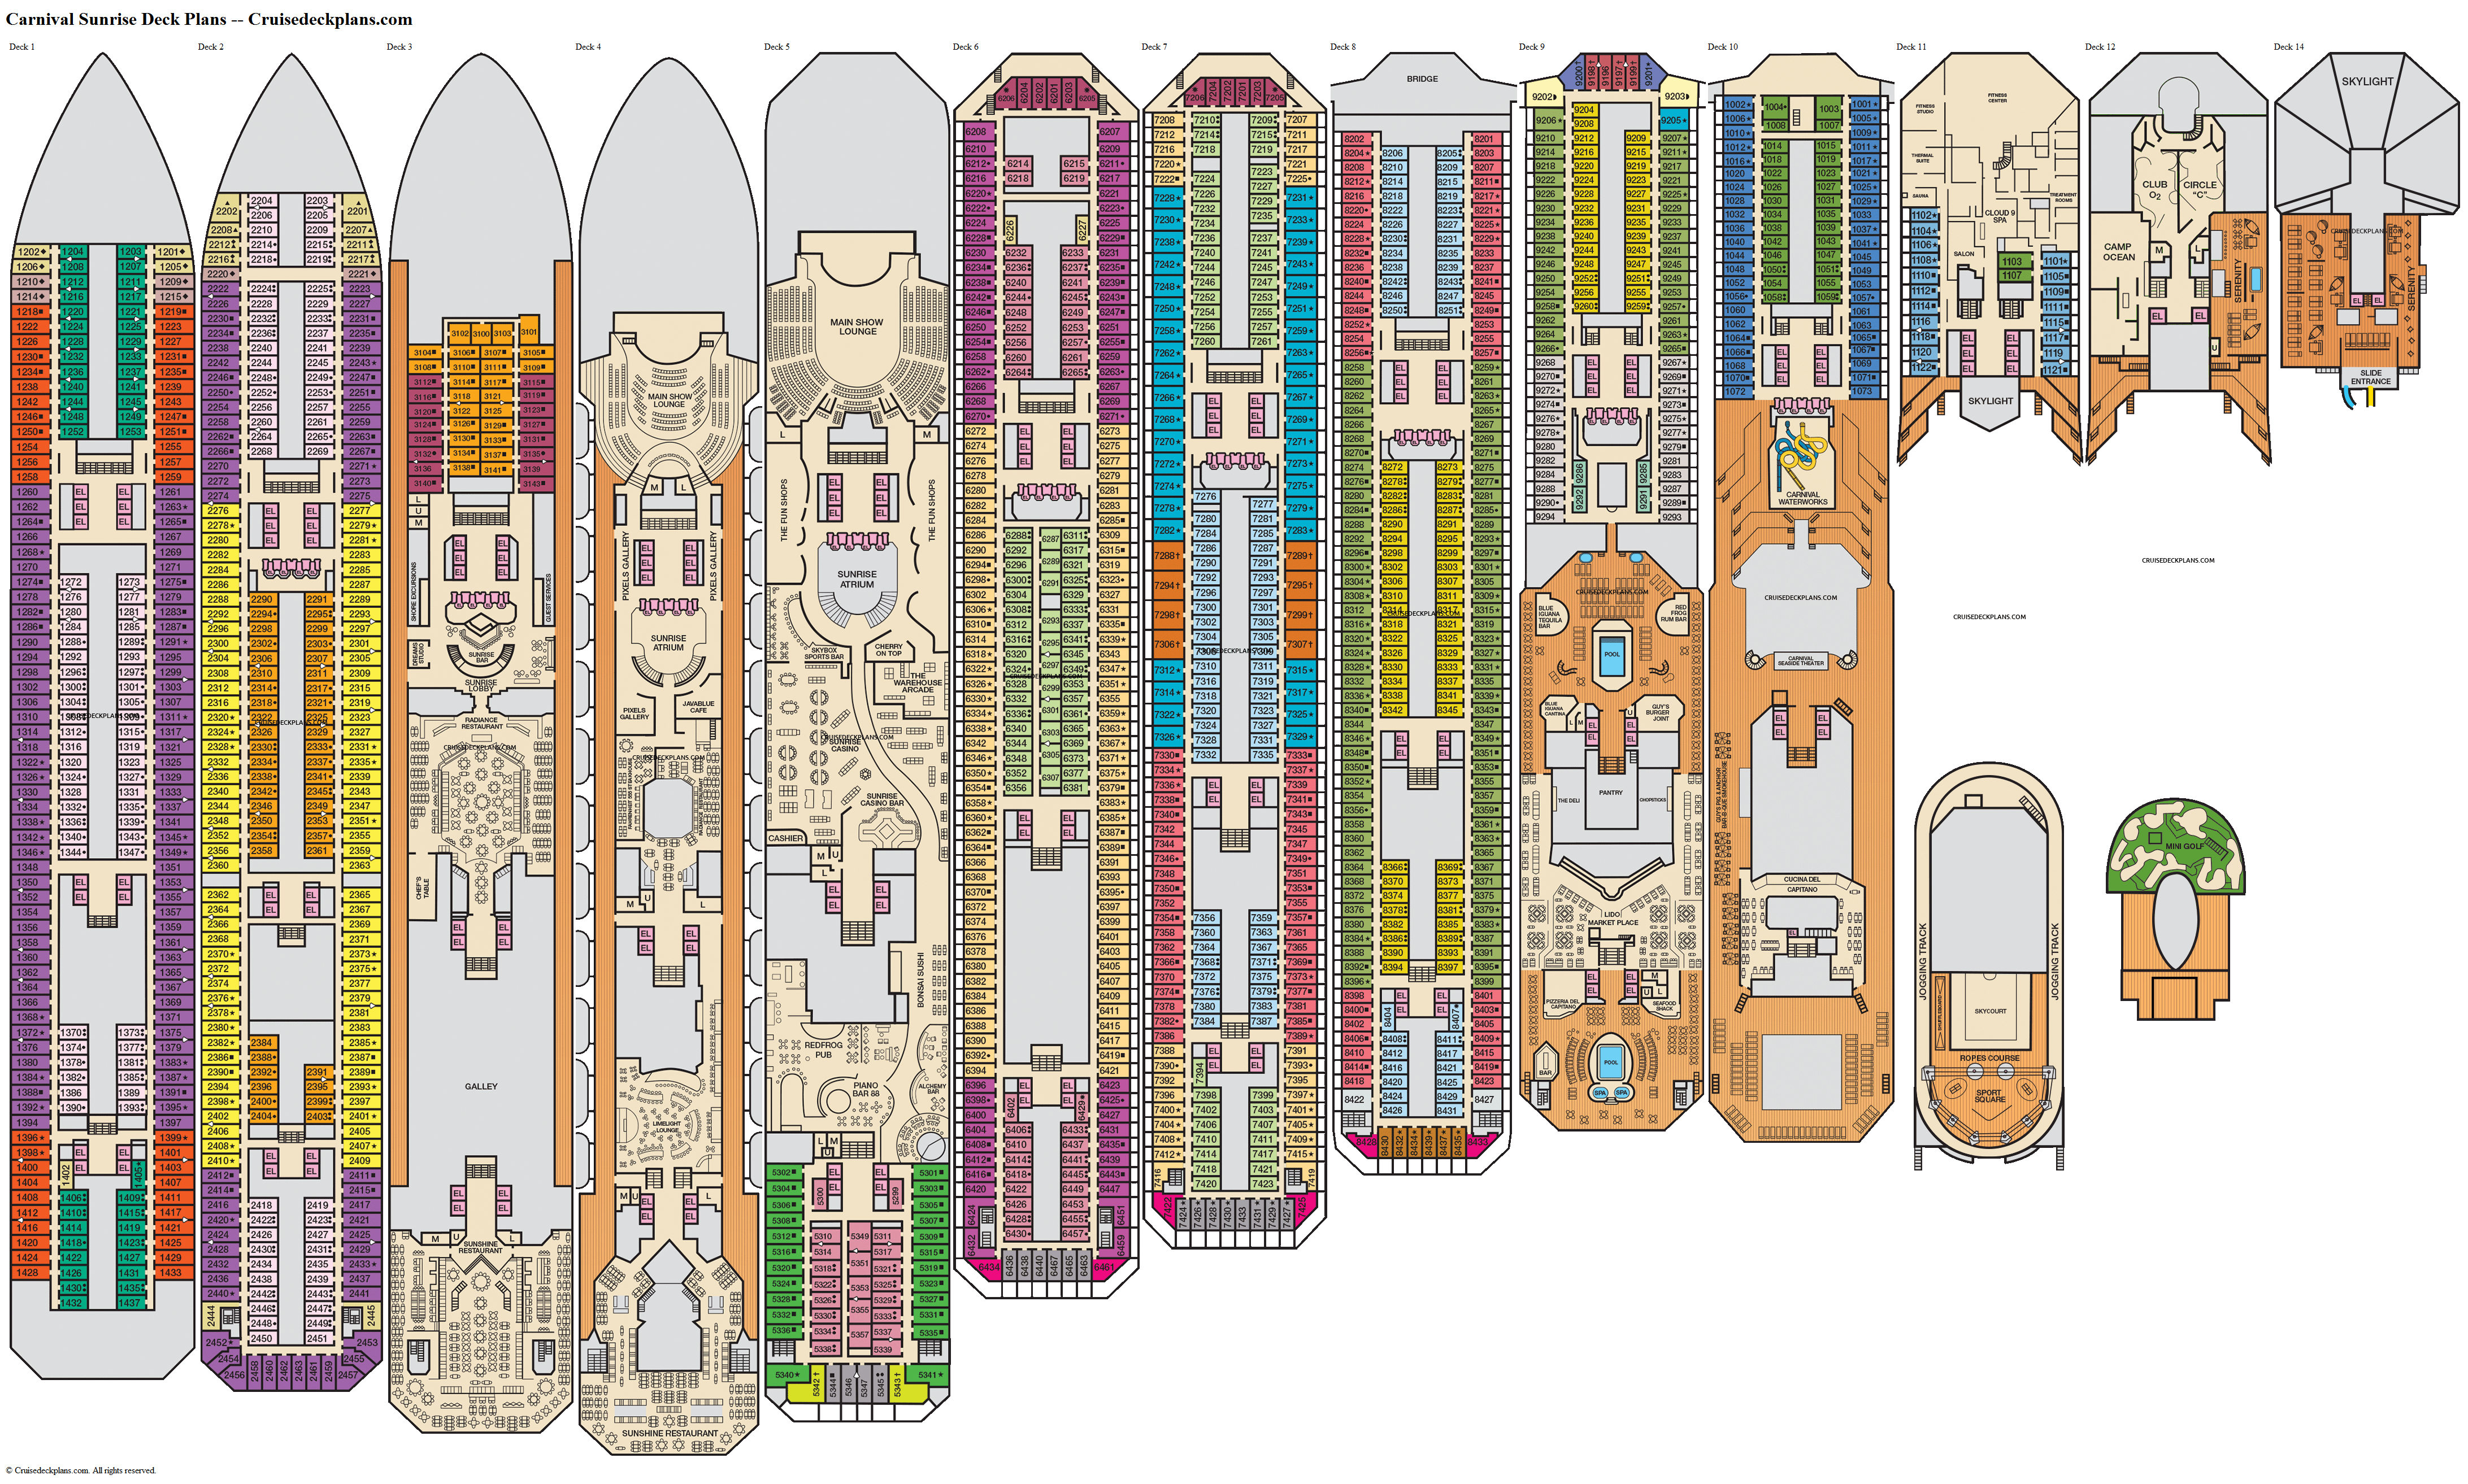 Carnival Sunrise deck plans image